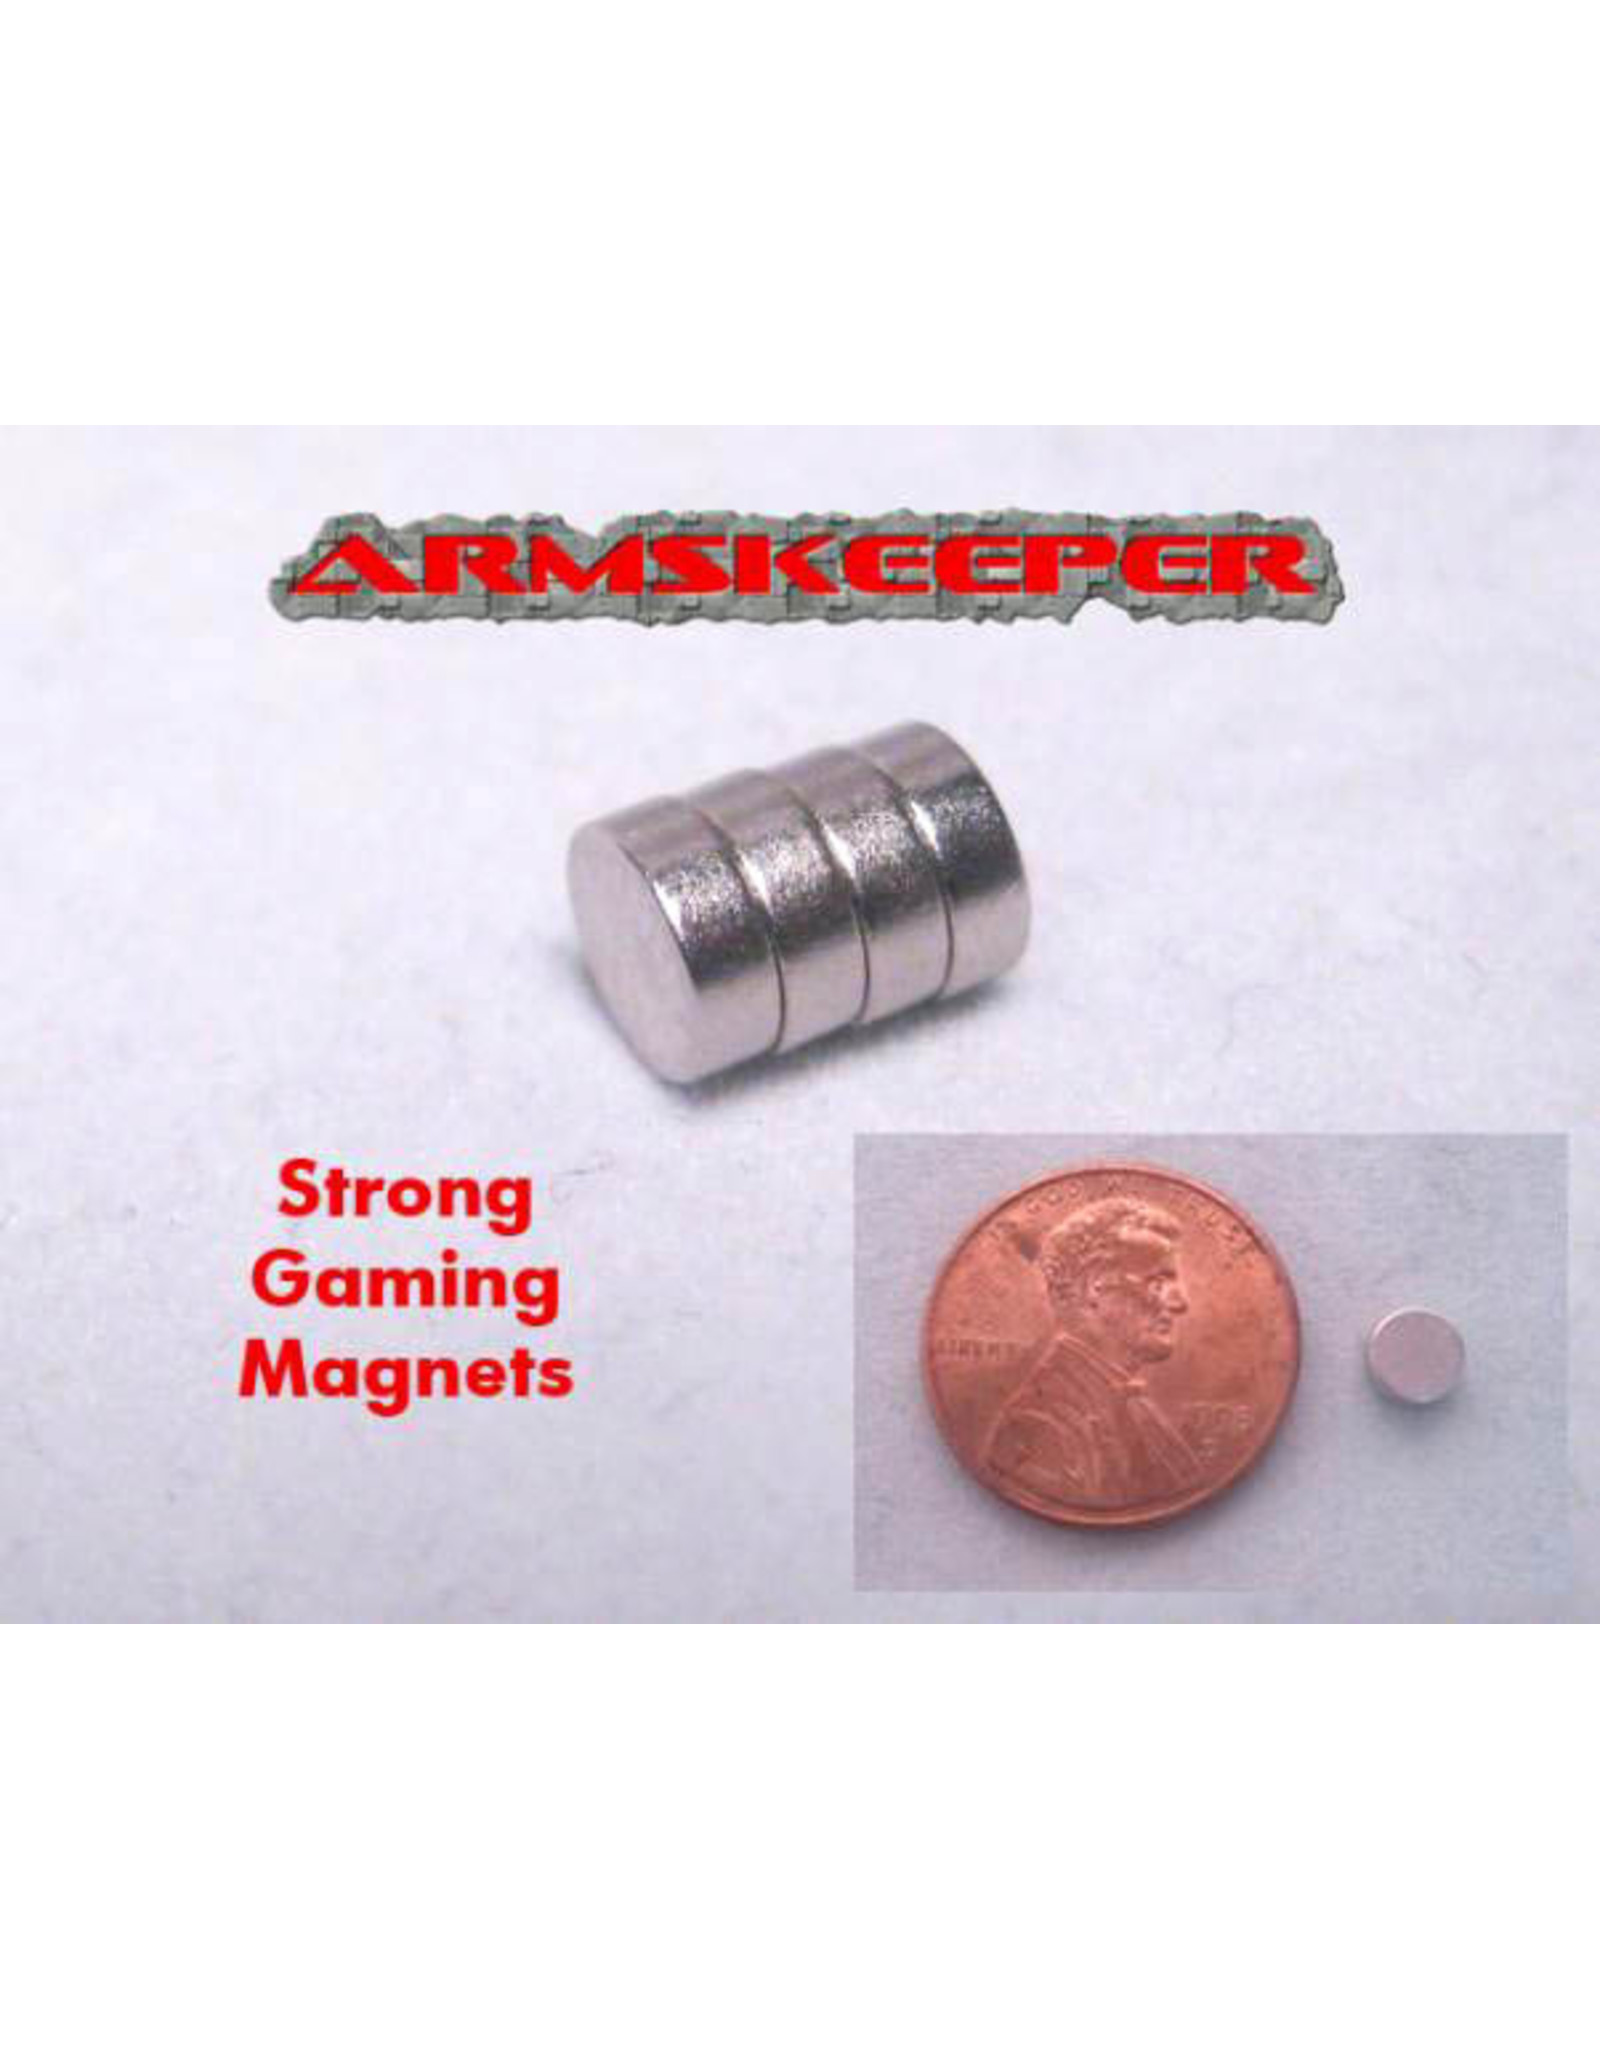 Armskeeper Magnets Large